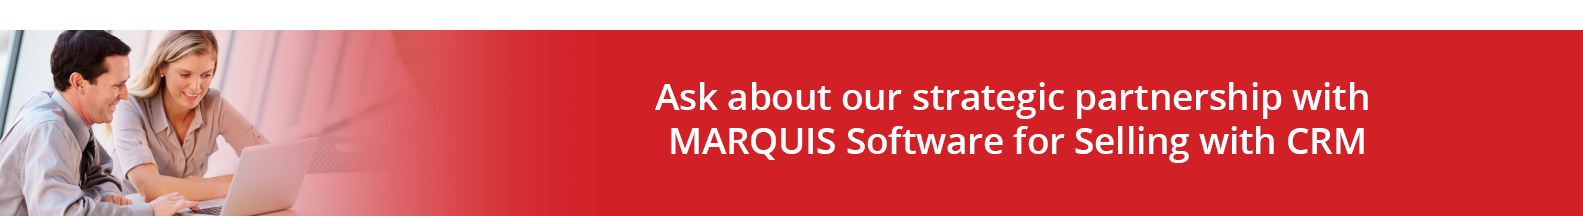 Ask about our strategic partnership with MARQUIS Software for Selling with CRM